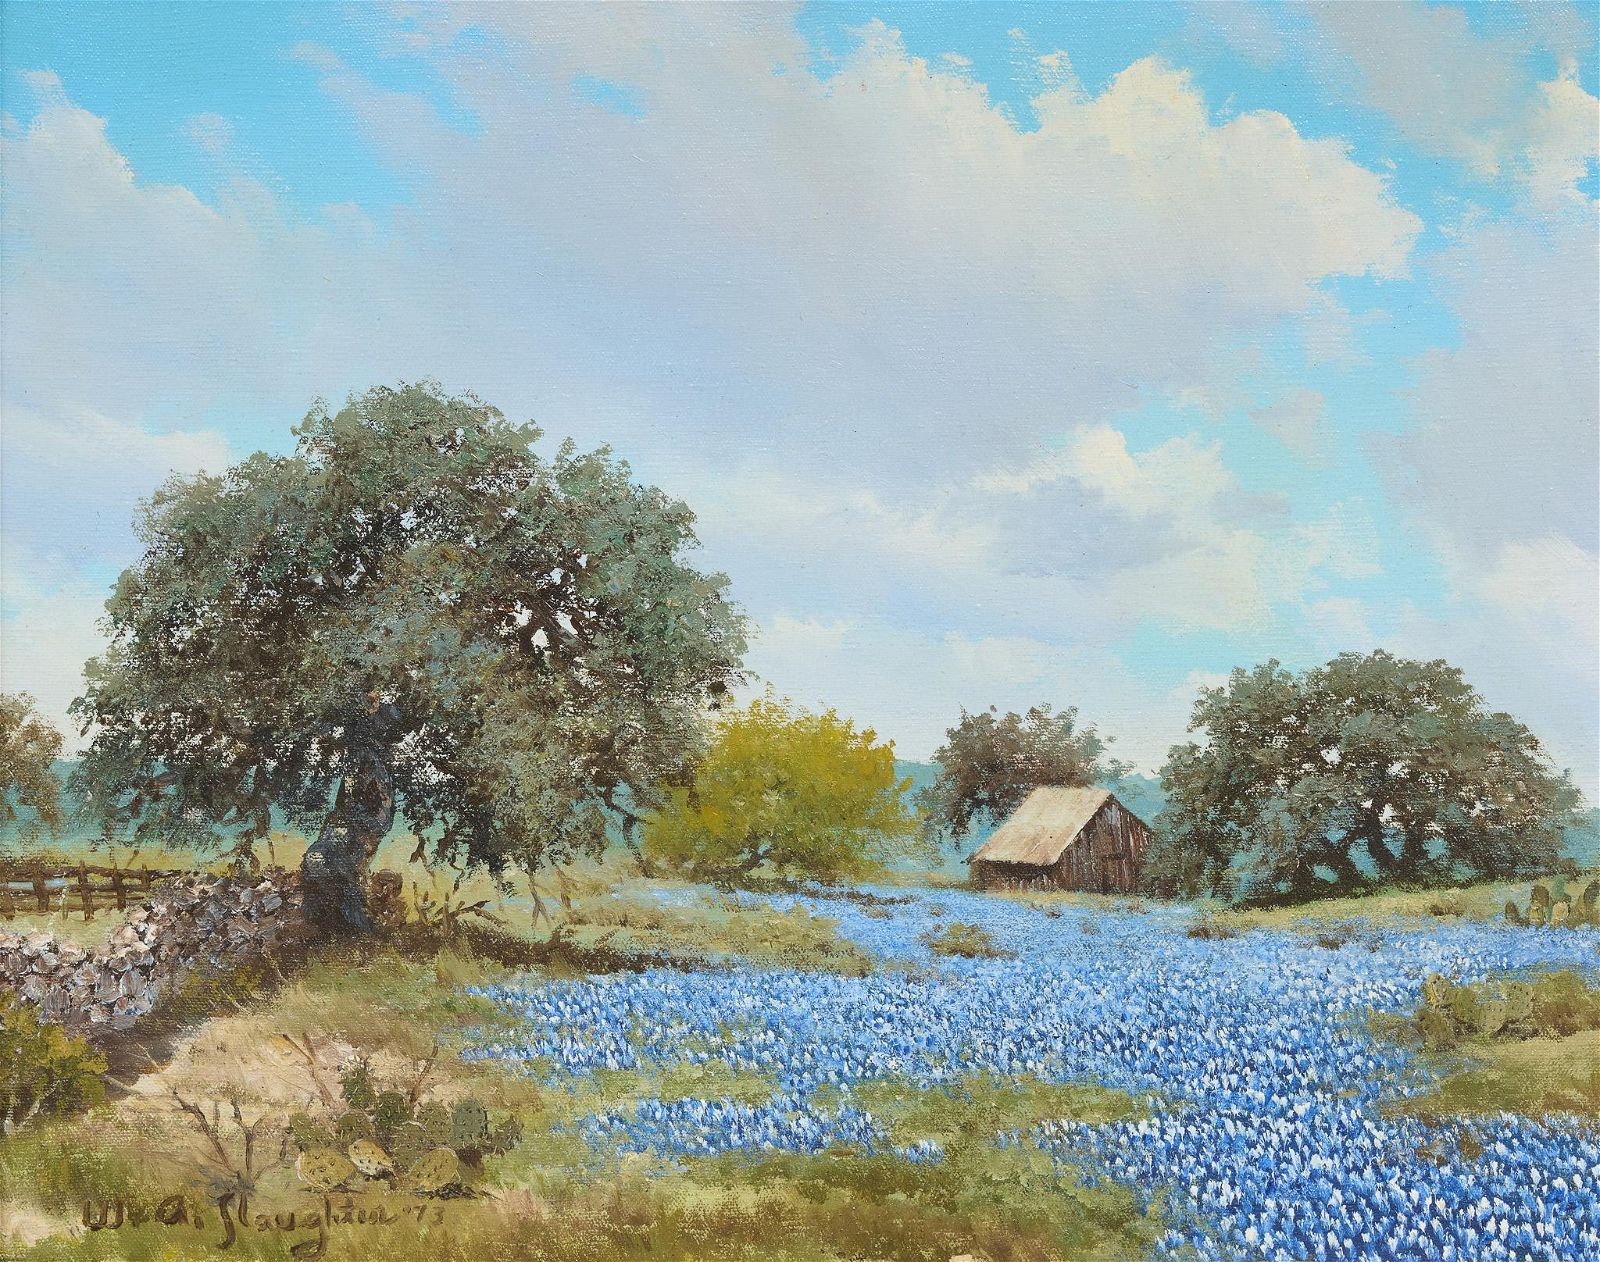 William A. Slaughter (1923-2003), Field of Bluebonnets,